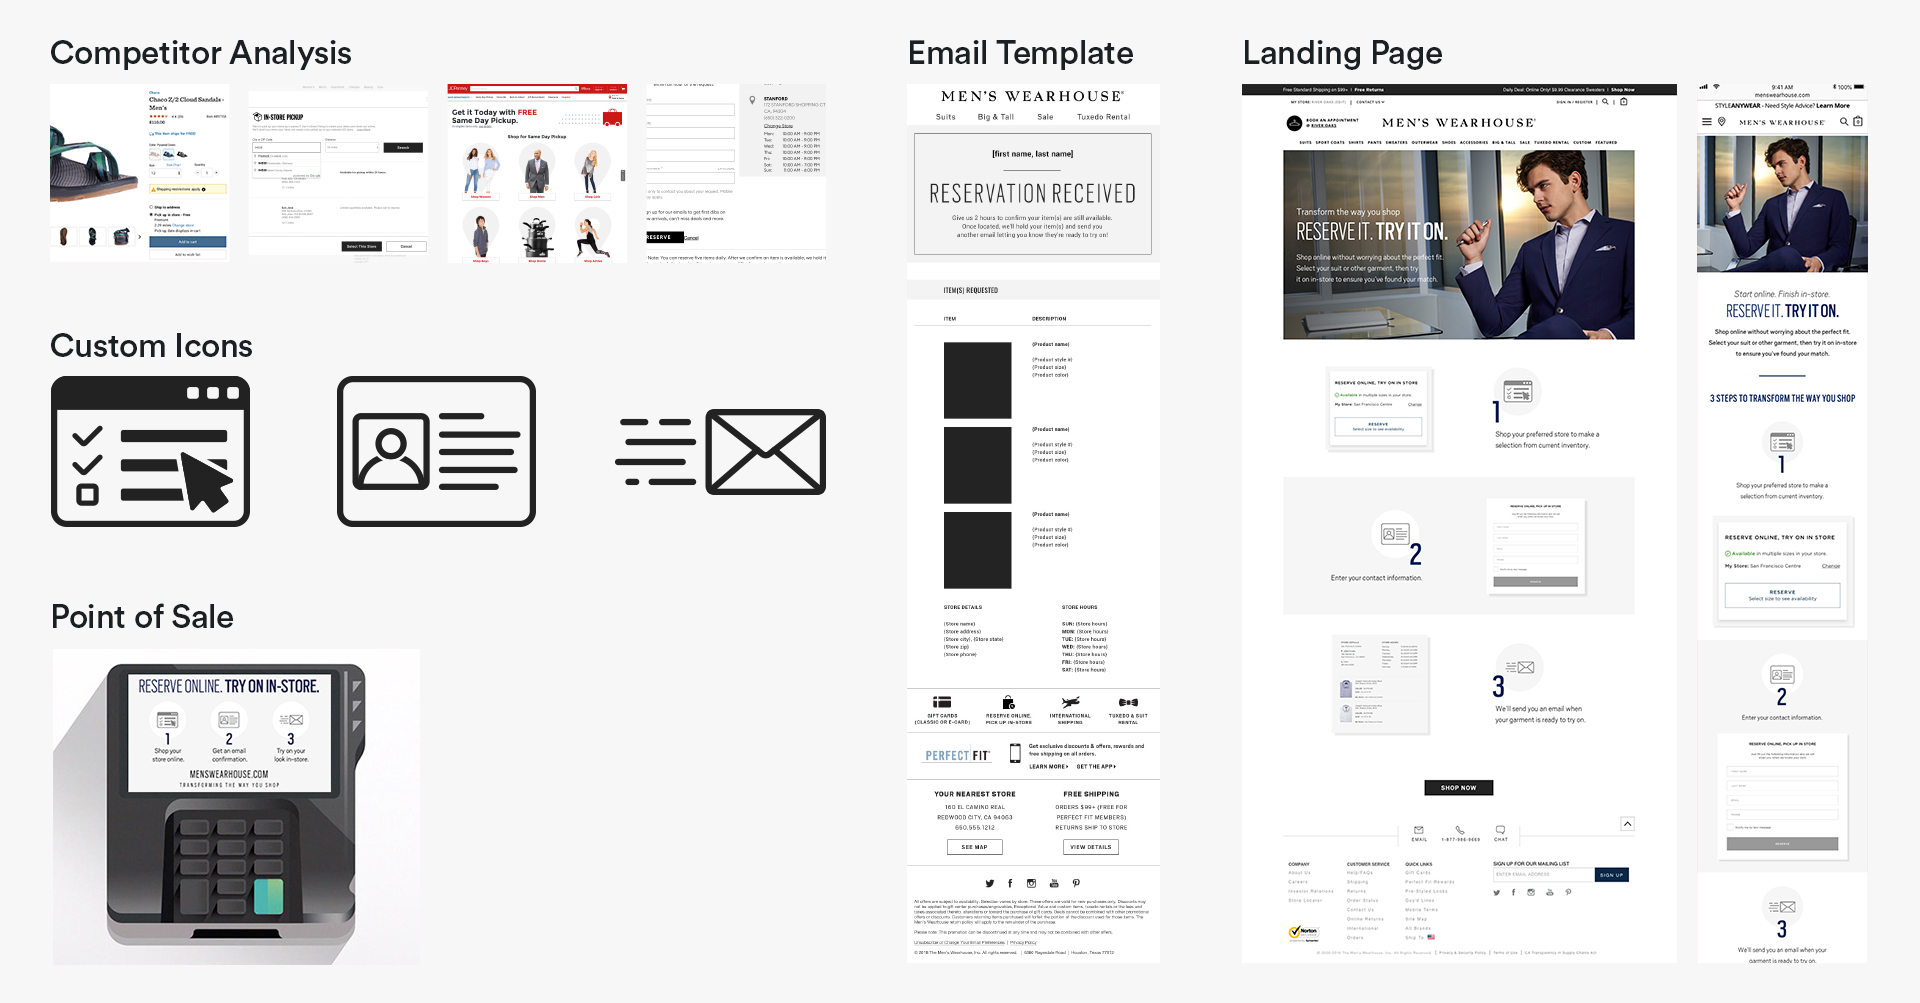 A few landing pages